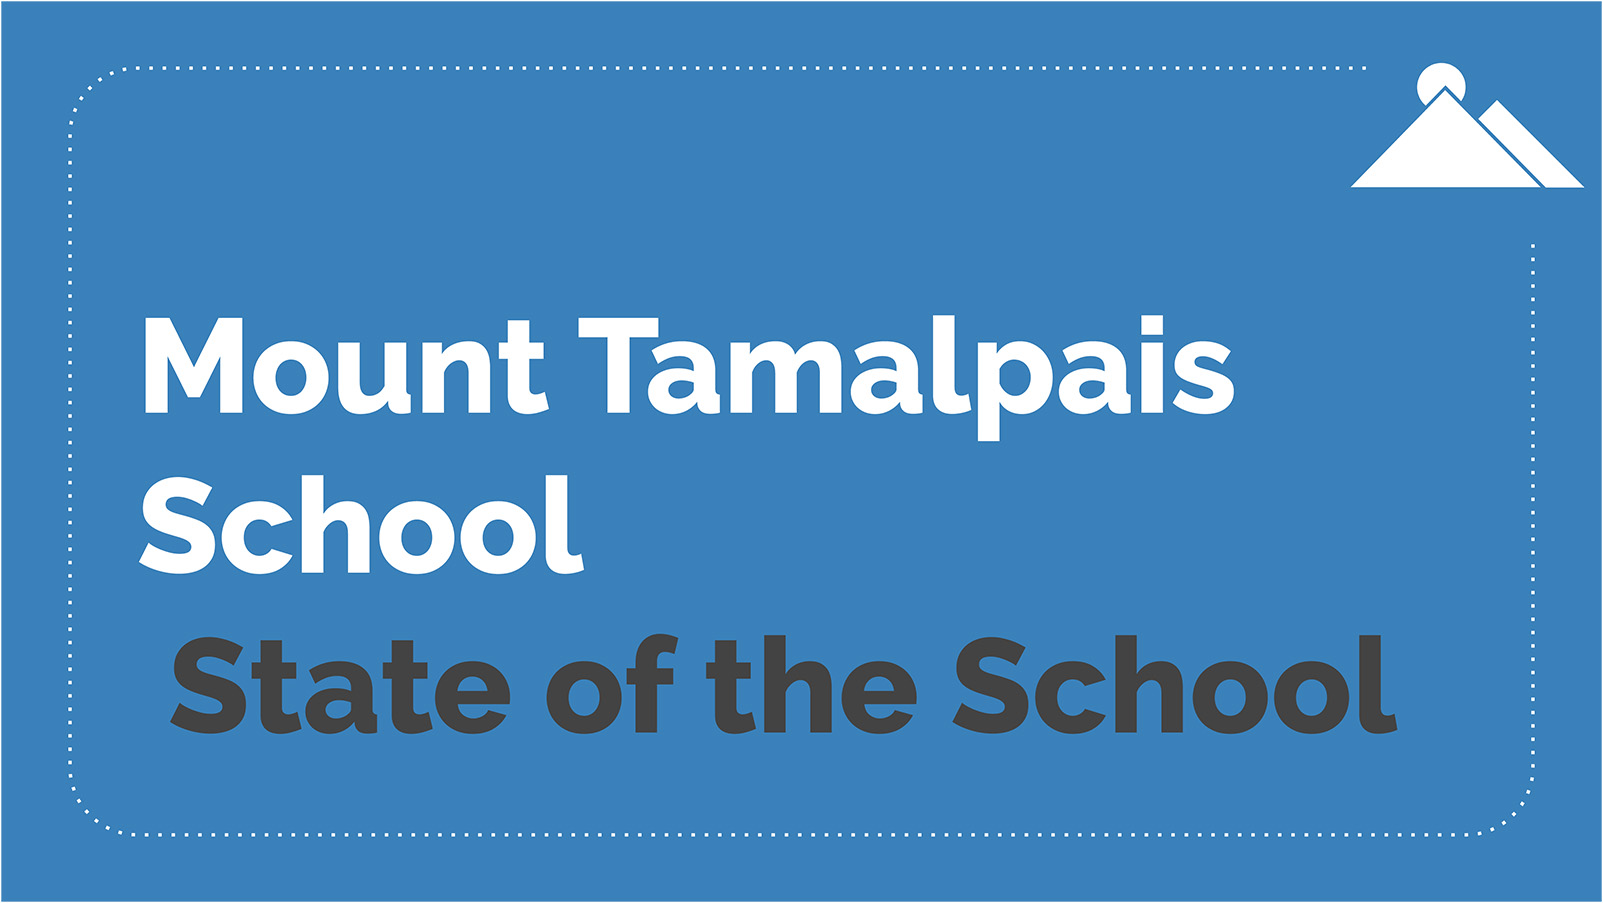 Click on the image above to view the State of the School slideshow.